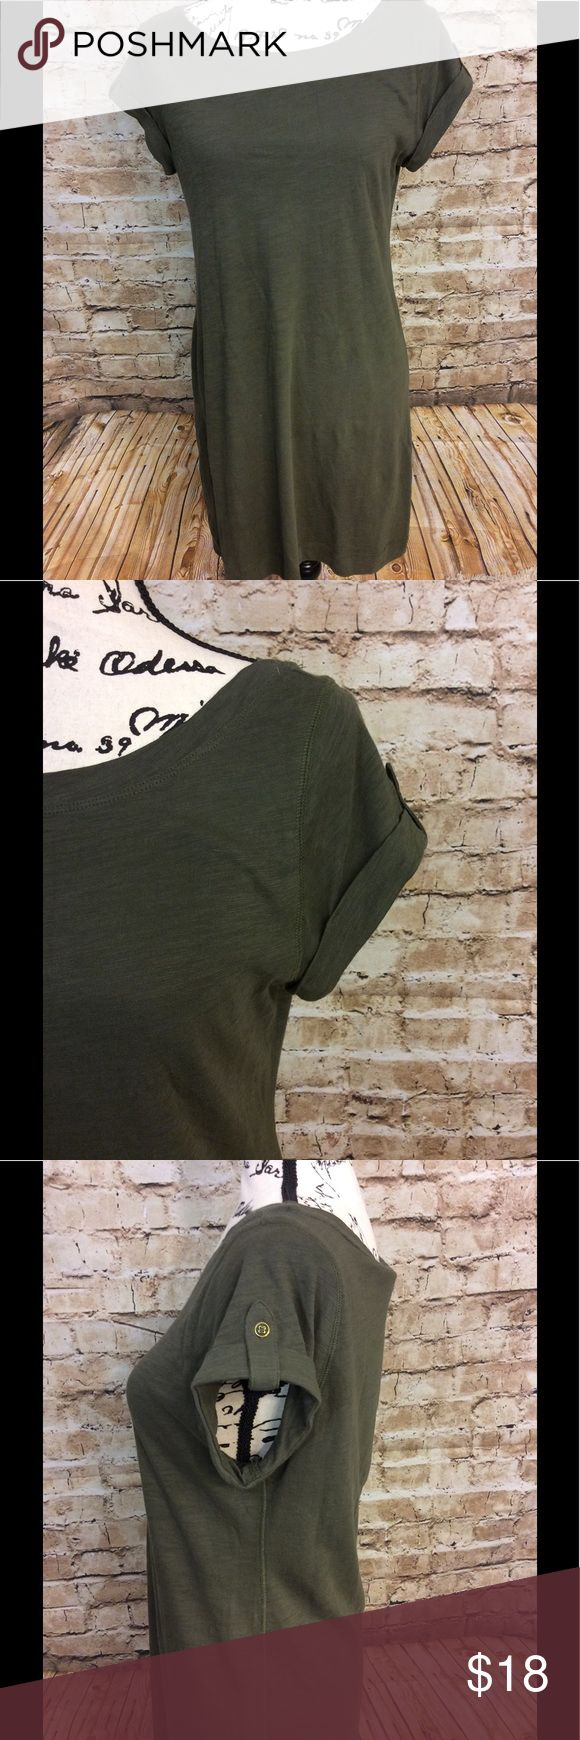 Banana republic green 100% cotton T-shirt dress Very gently used banana republic 100% cotton boat neck army green T-shirt dress short sleeve with rolled cuff with button flap on shoulder Very lightweight Length from top to bottom 35 inches Armpit armpit 17 inches Arm length 4 1/2 inches Banana Republic Dresses Midi